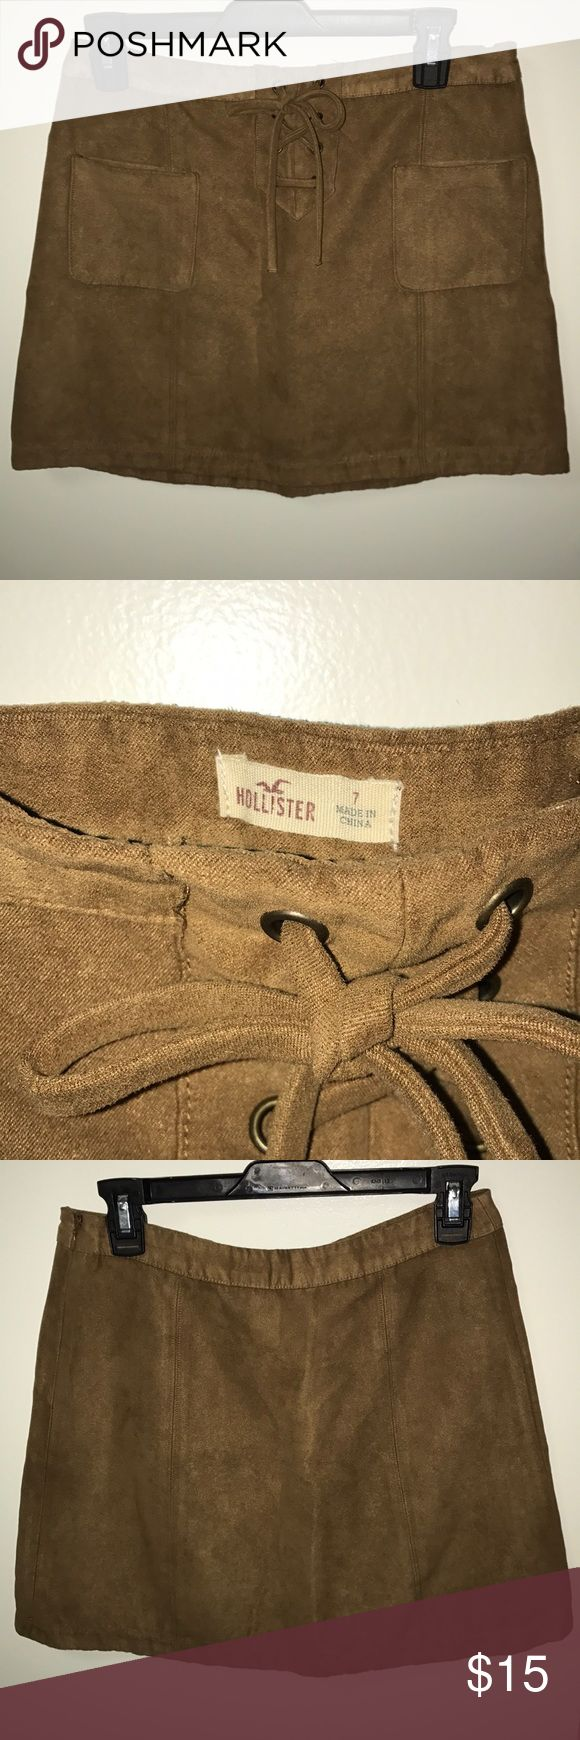 Hollister Skirt - Lace up Faux Suede skirt Comfortable stylish skirt! Has been worn twice and looks and feels brand new  Originally bought at Hollister for $40 I will pay for dry cleaner's to wash/dry/fold before shipping! Hollister Skirts A-Line or Full